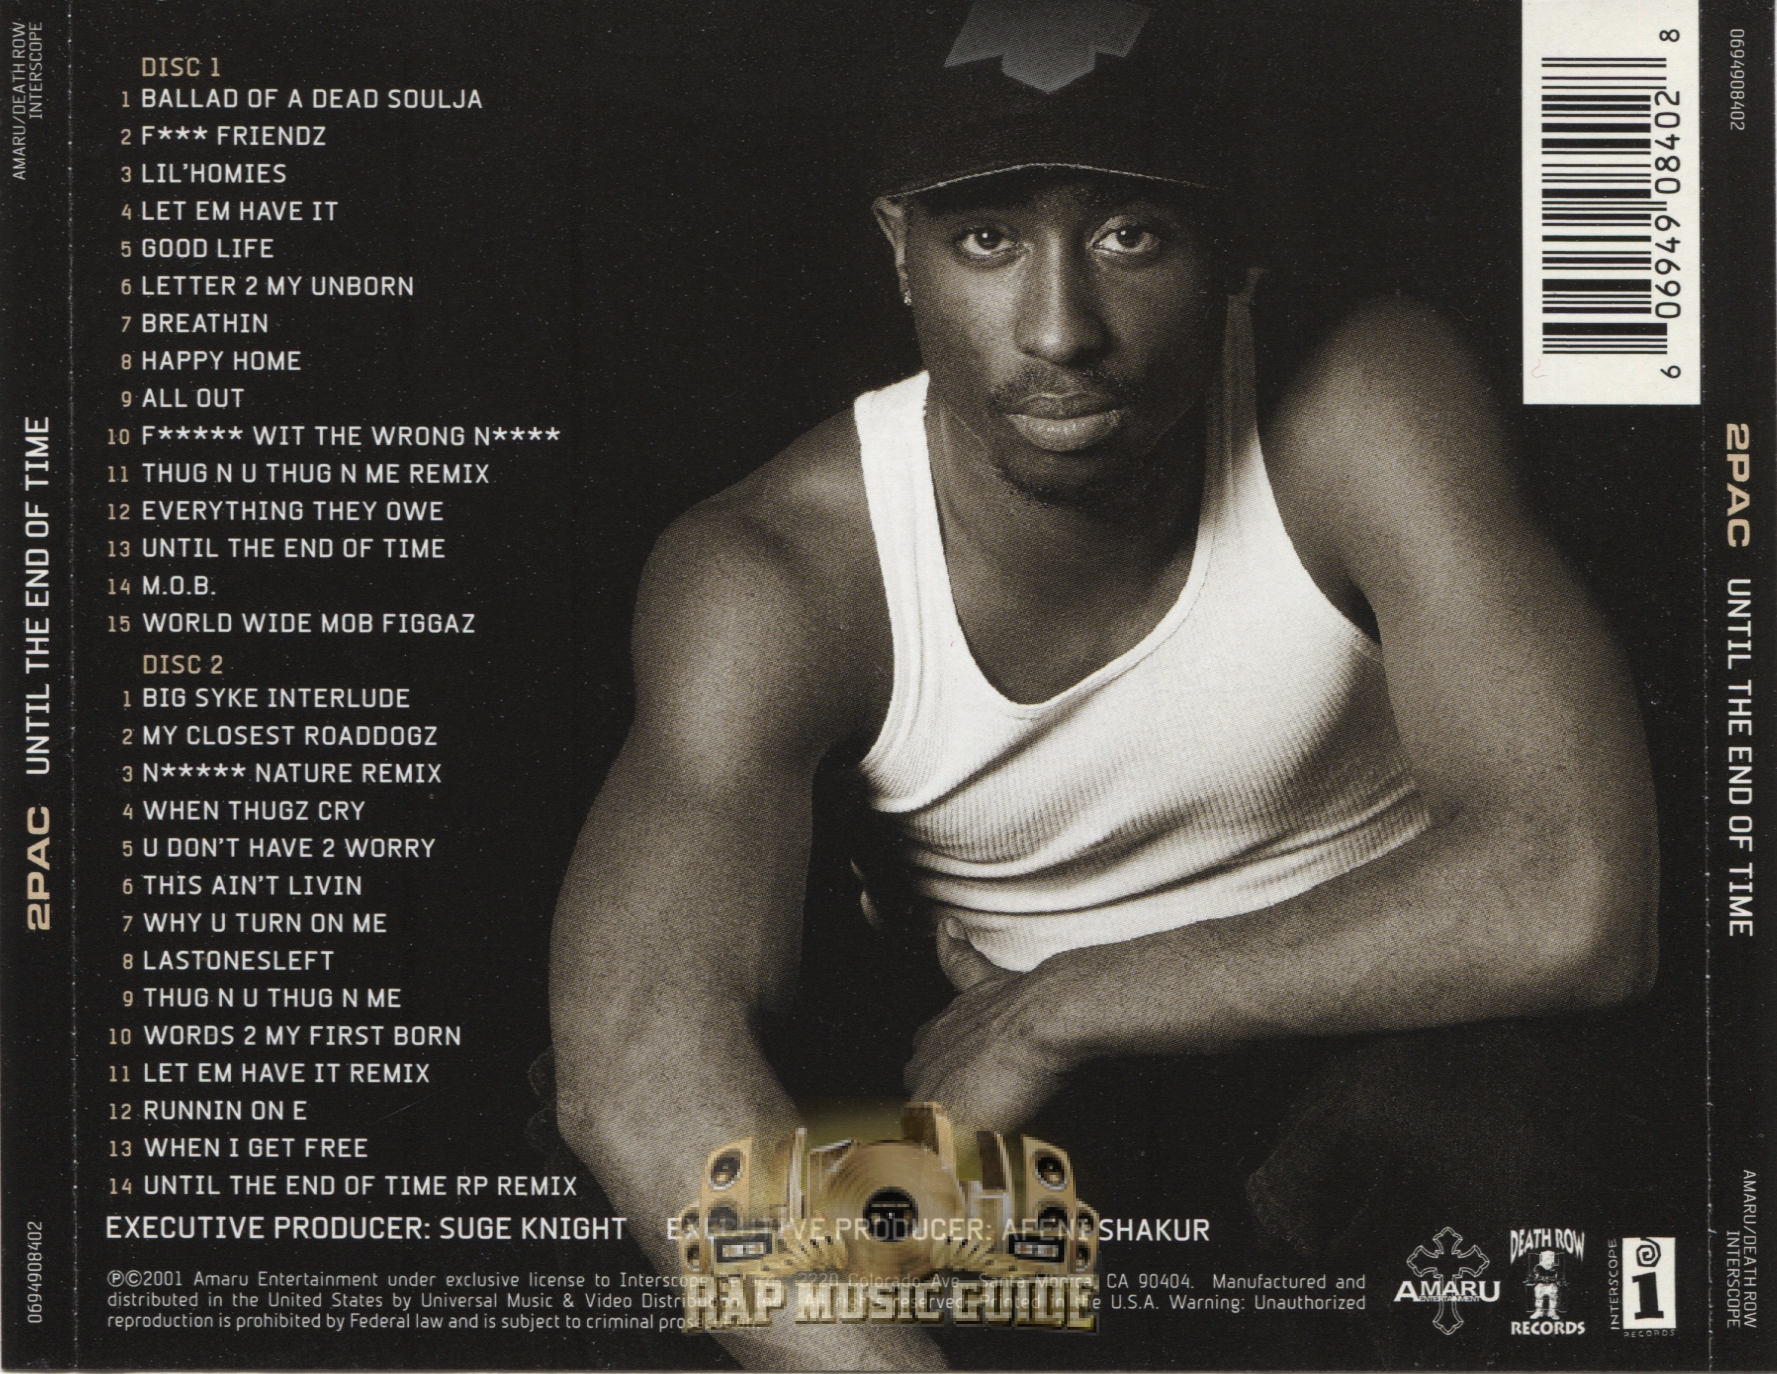 2Pac - Until The End Of Time: CD | Rap Music Guide